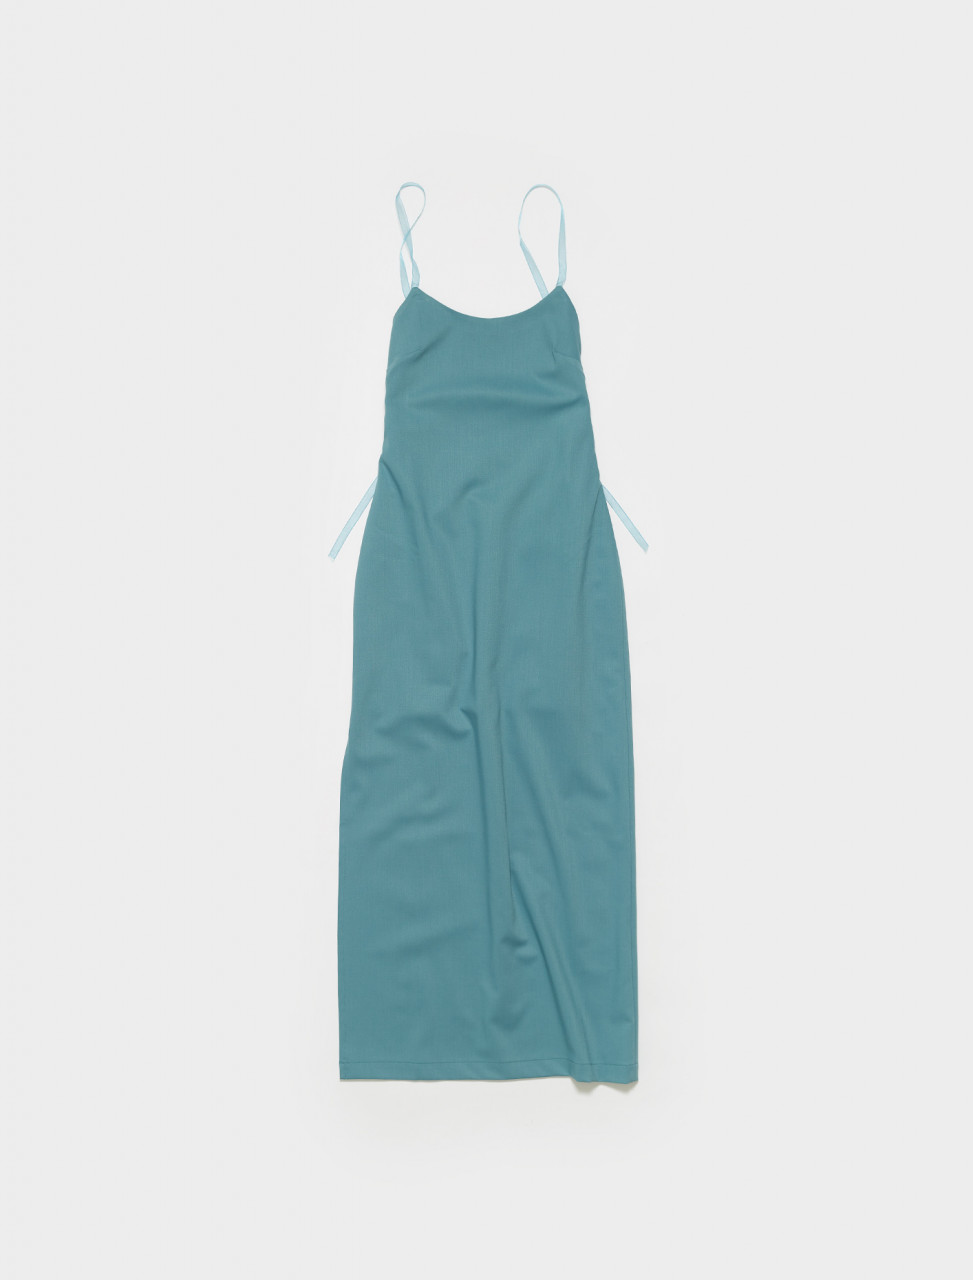 PWM016-121 PALOMA WOOL TERESA STRAPPY DRESS IN CYAN